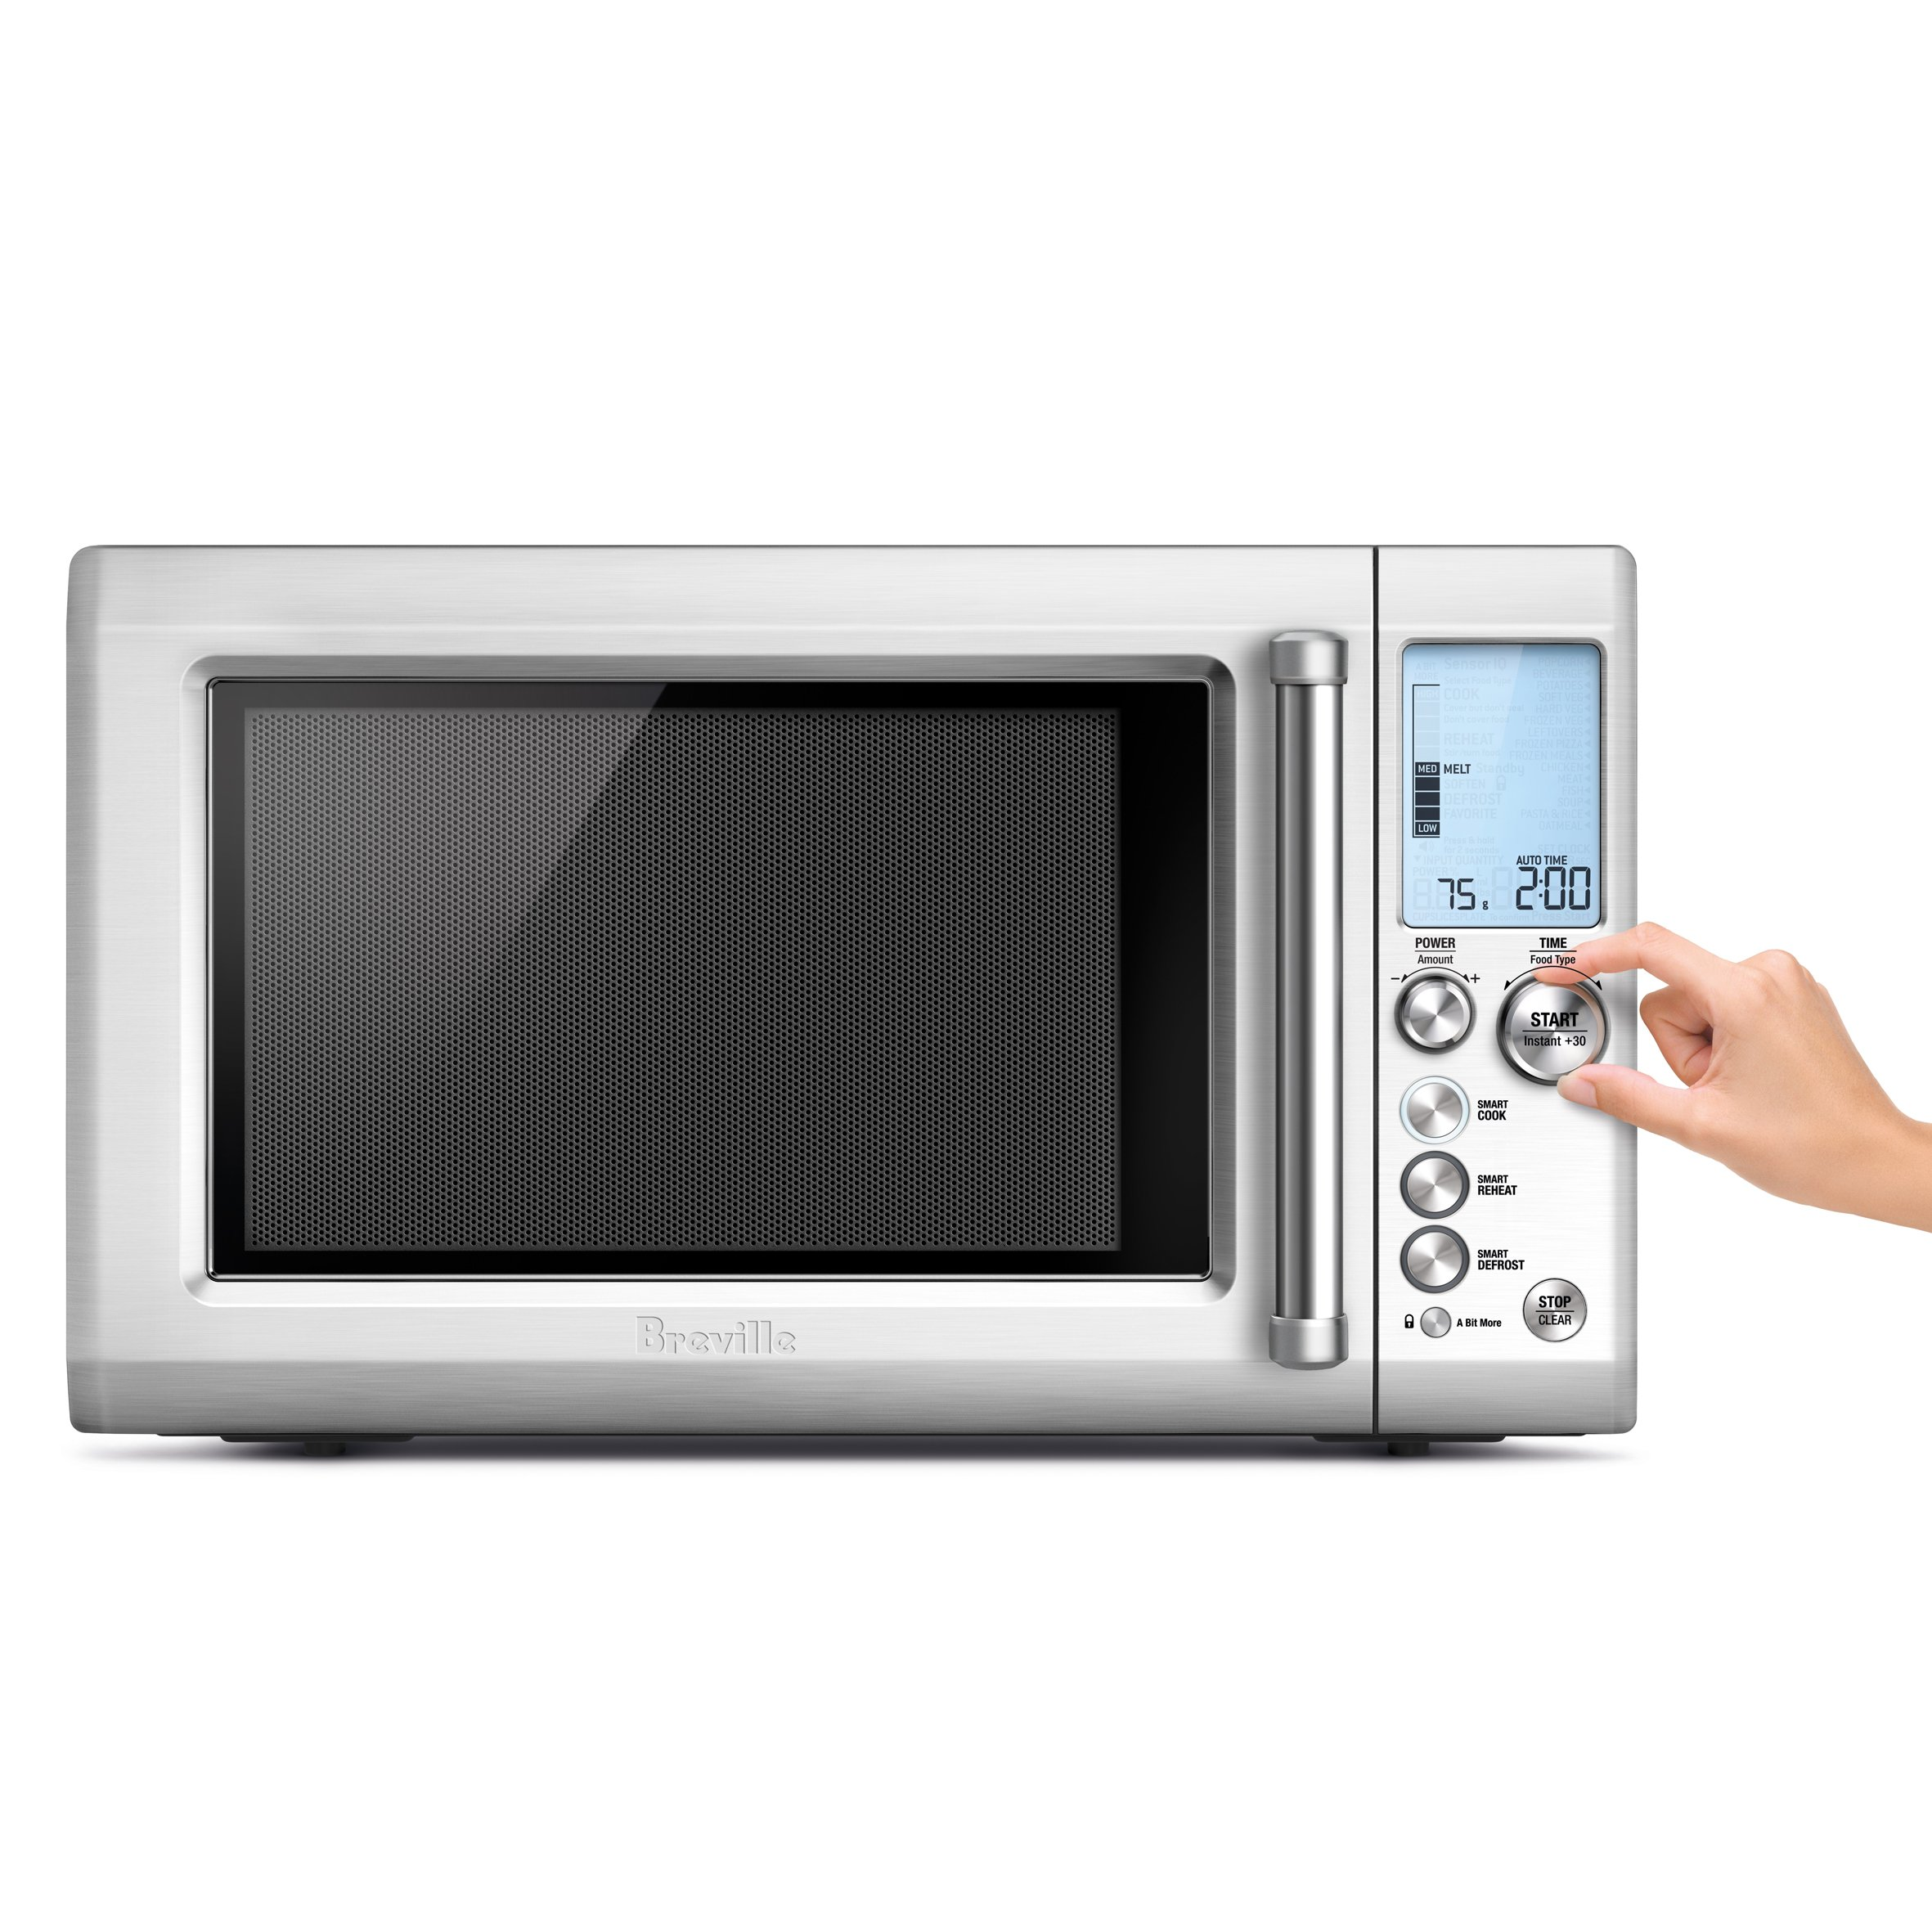 The Best Microwaves To Buy In 2018